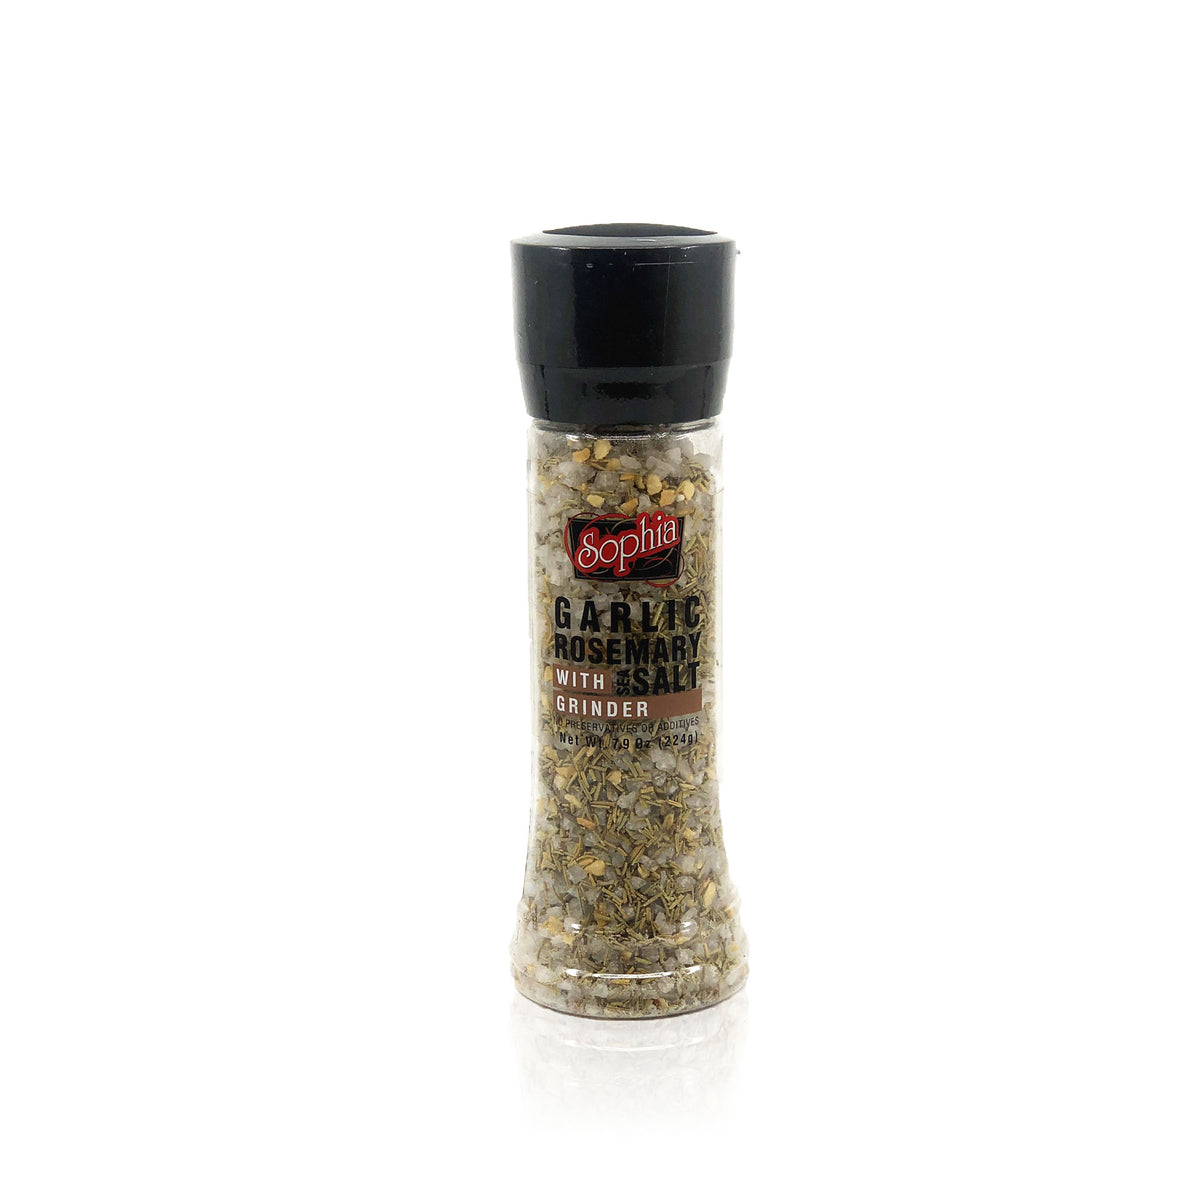 Sophia S&P Grinder - Garlic & Rosemary Salt 7.9oz